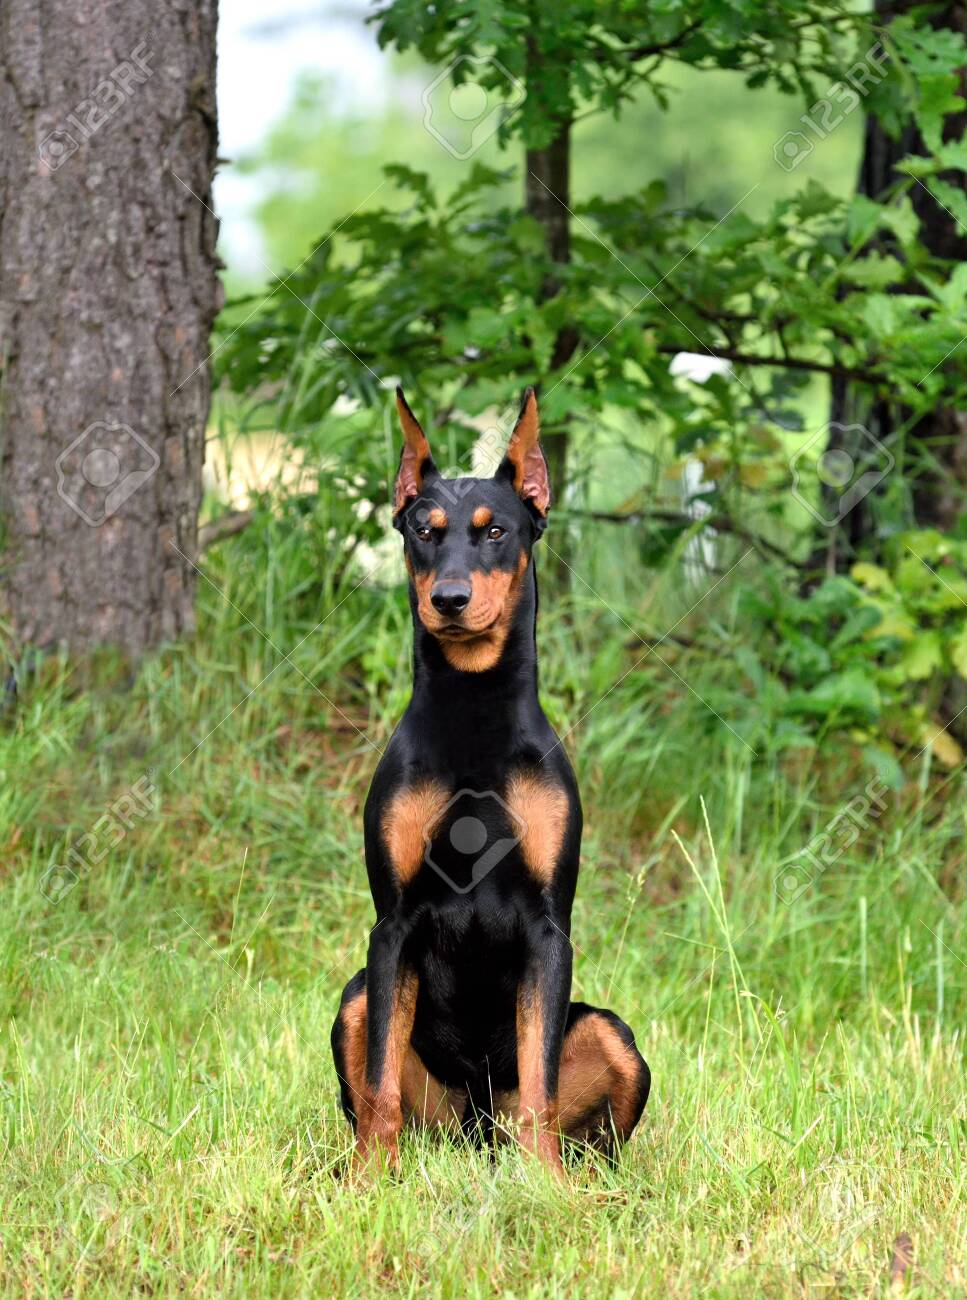 Tan And Black German Pinscher Or Doberman Dog With Uncropped Stock Photo Picture And Royalty Free Image Image 151209107